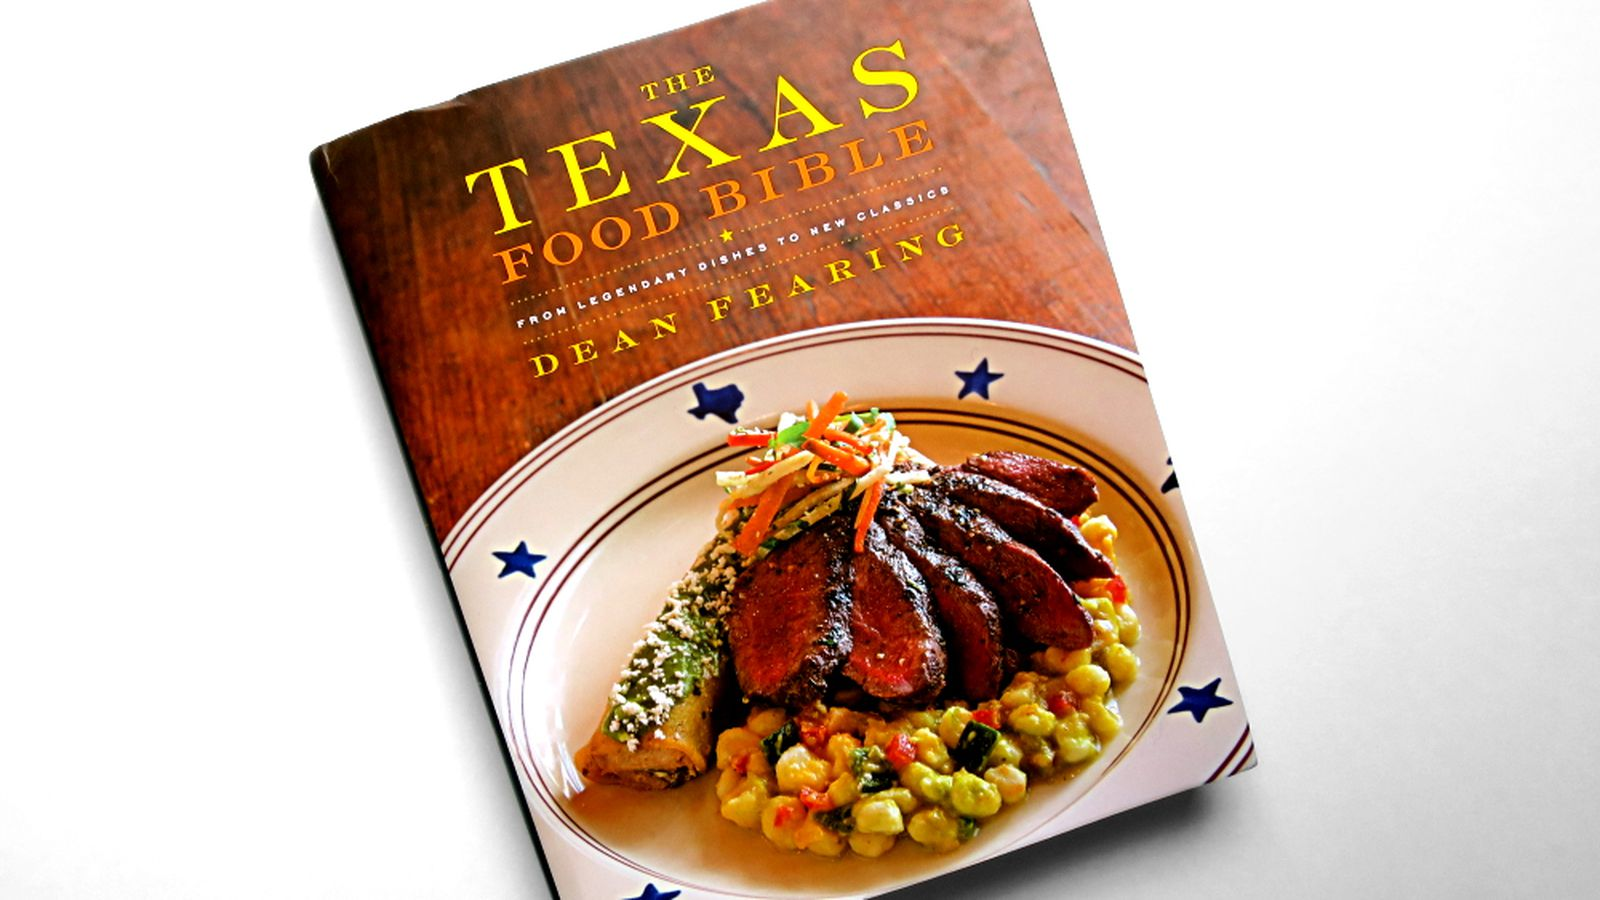 dallas eater first look dean fearing s the texas food bible